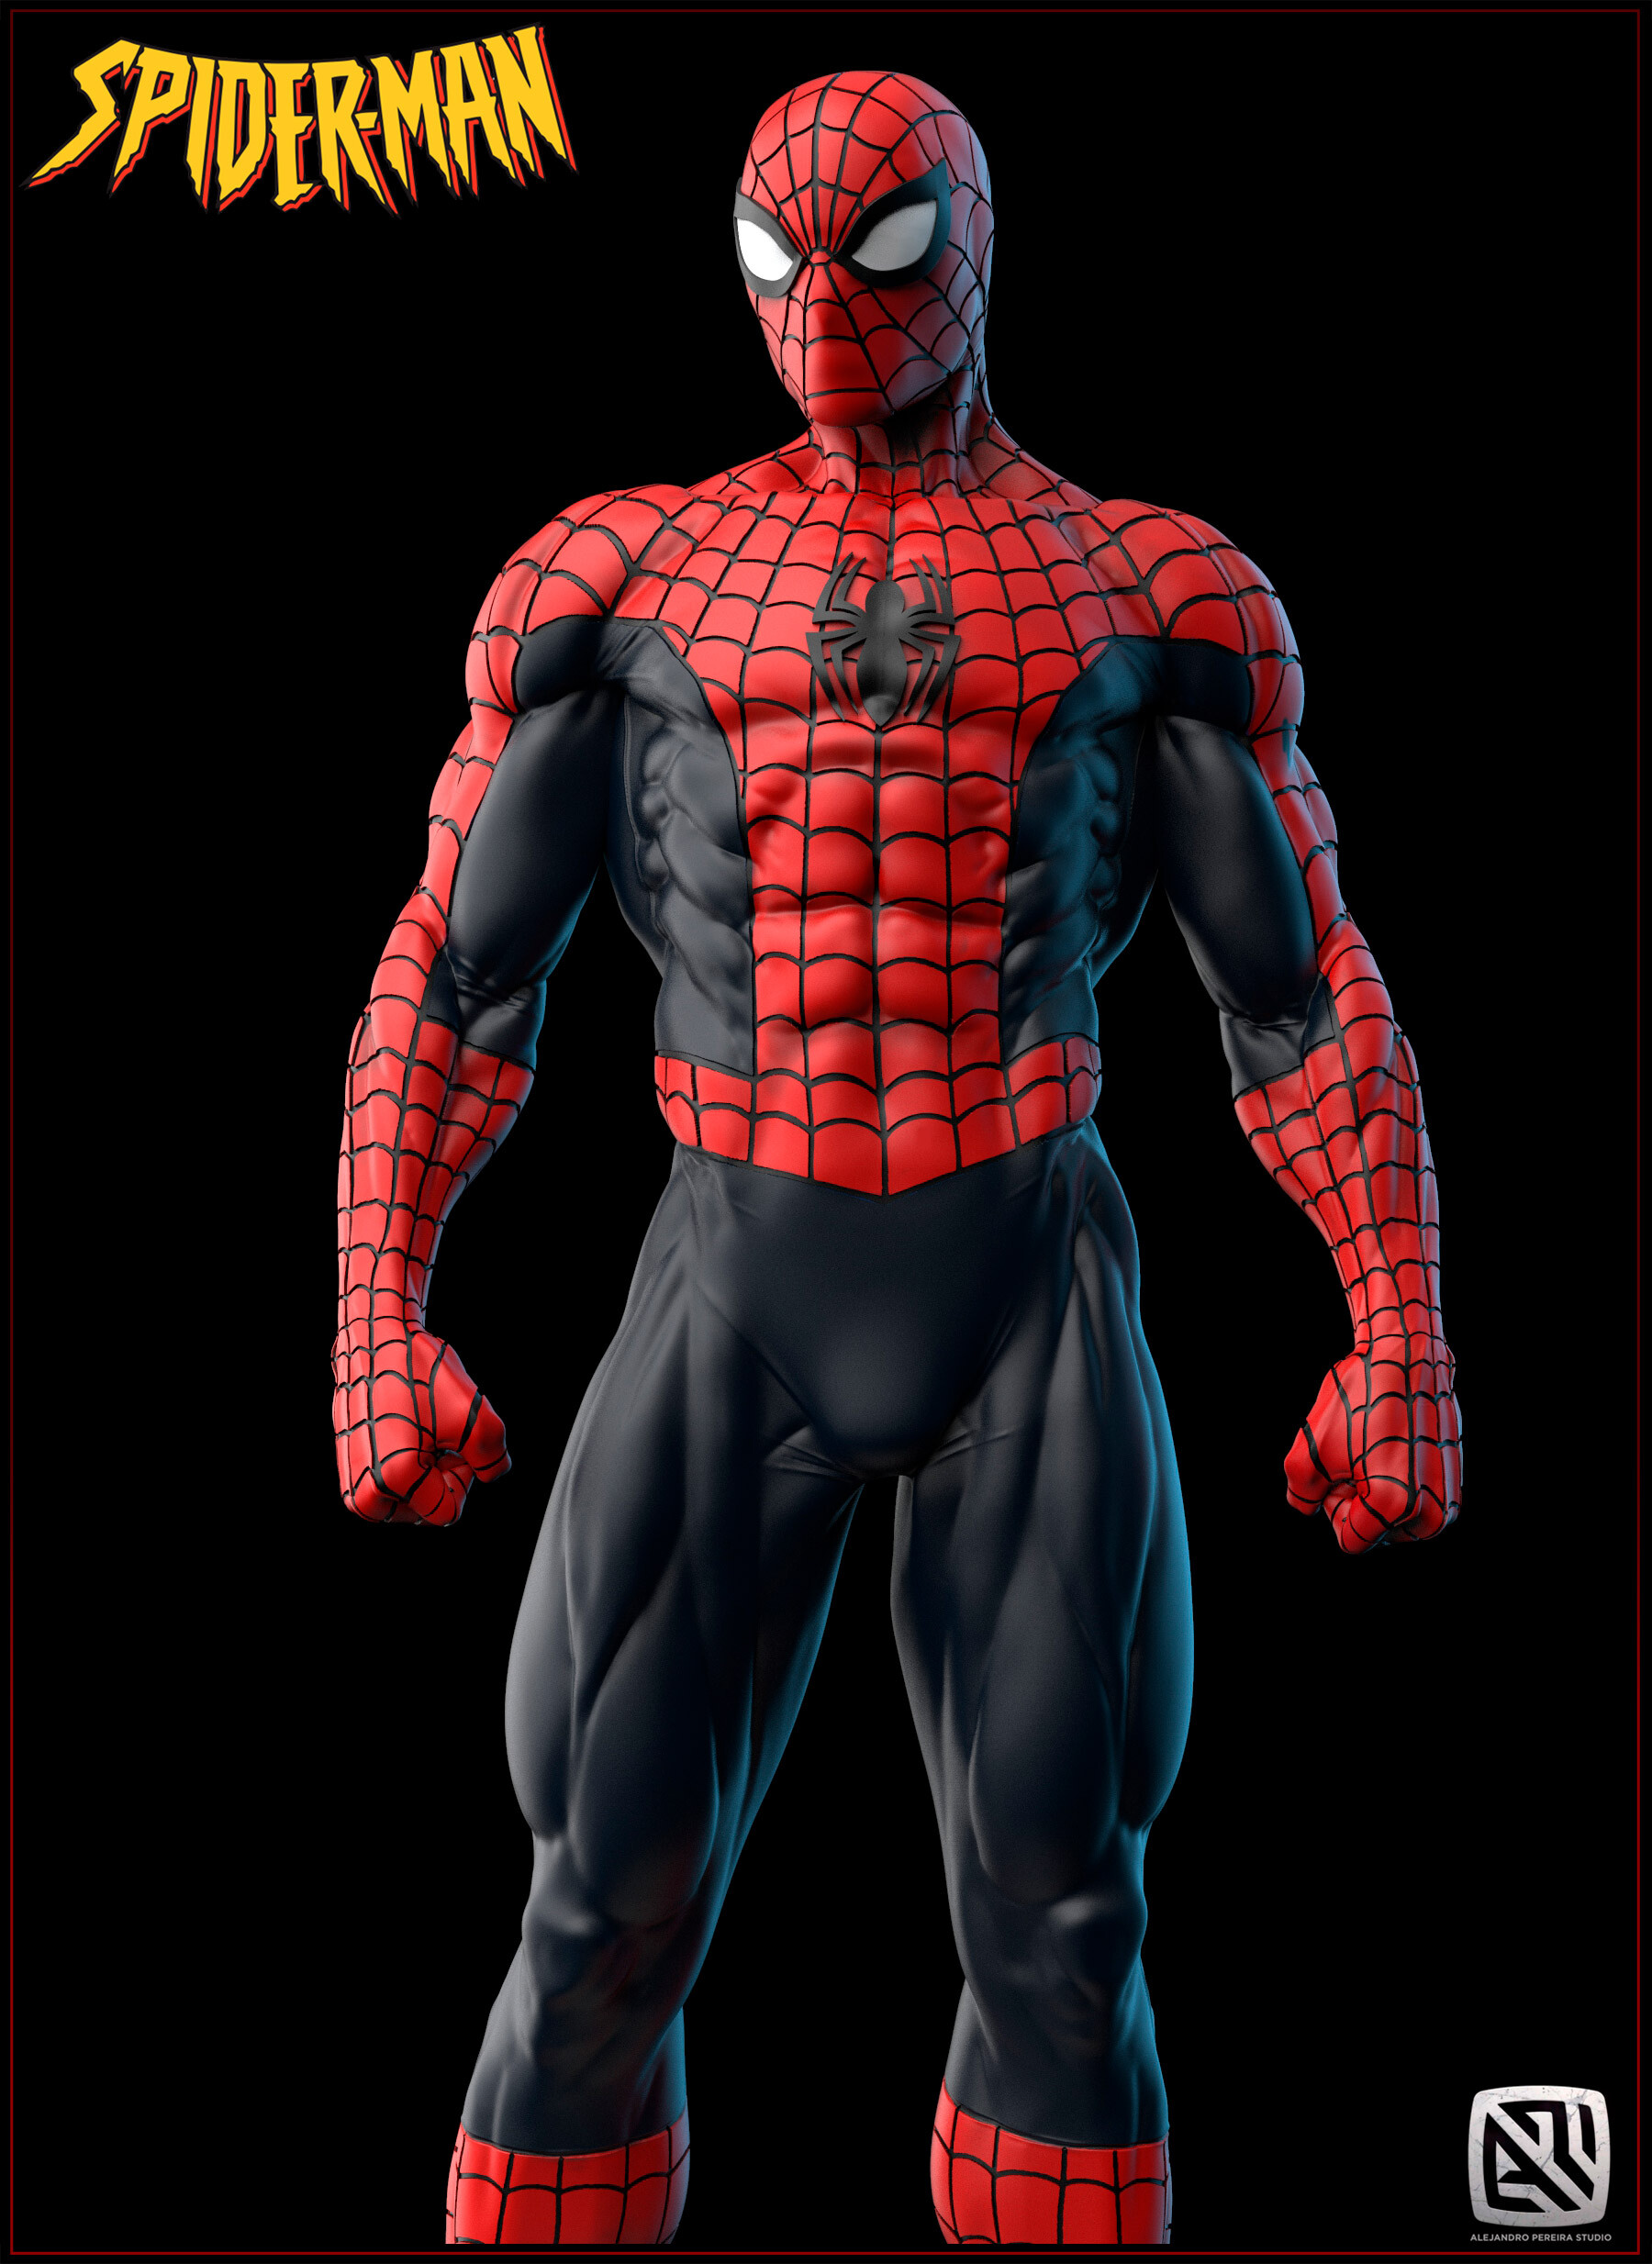 Alejandro pereira spidey render color 017